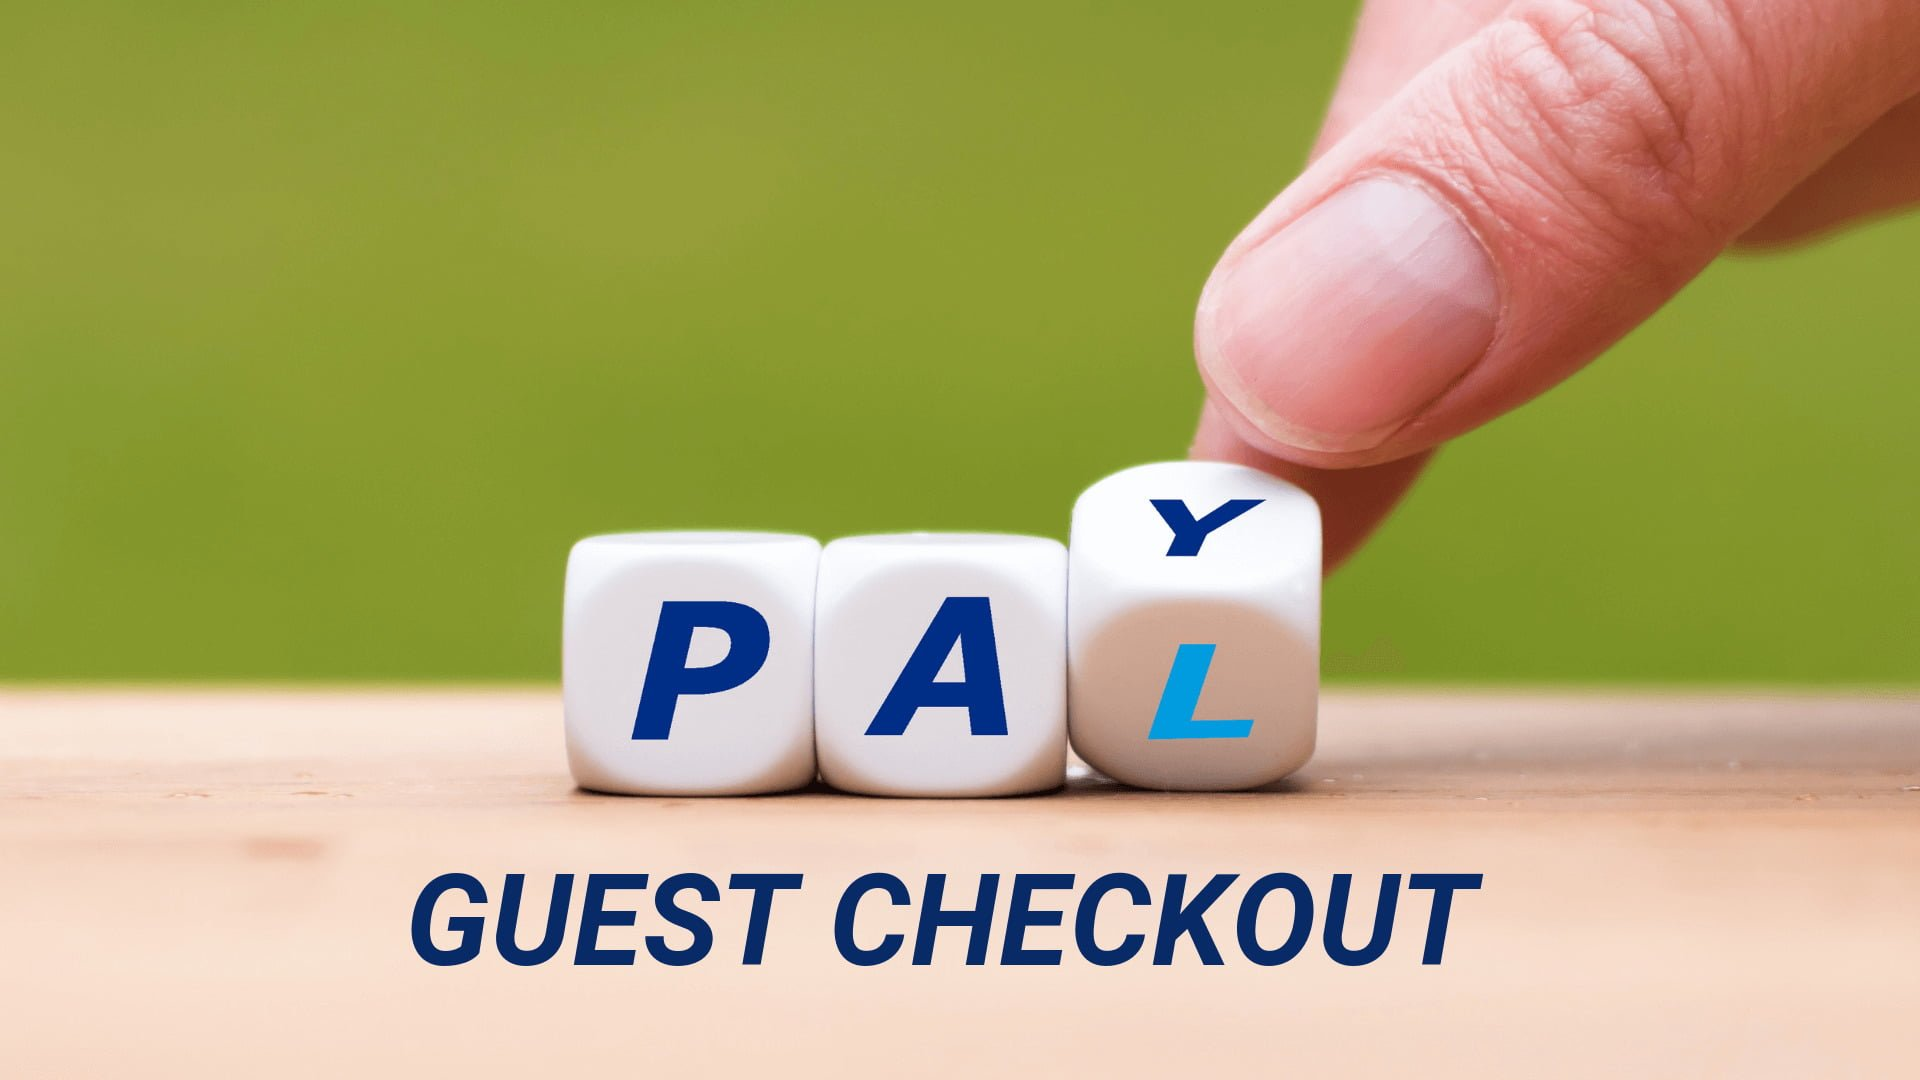 Enable PayPal Guest Checkout